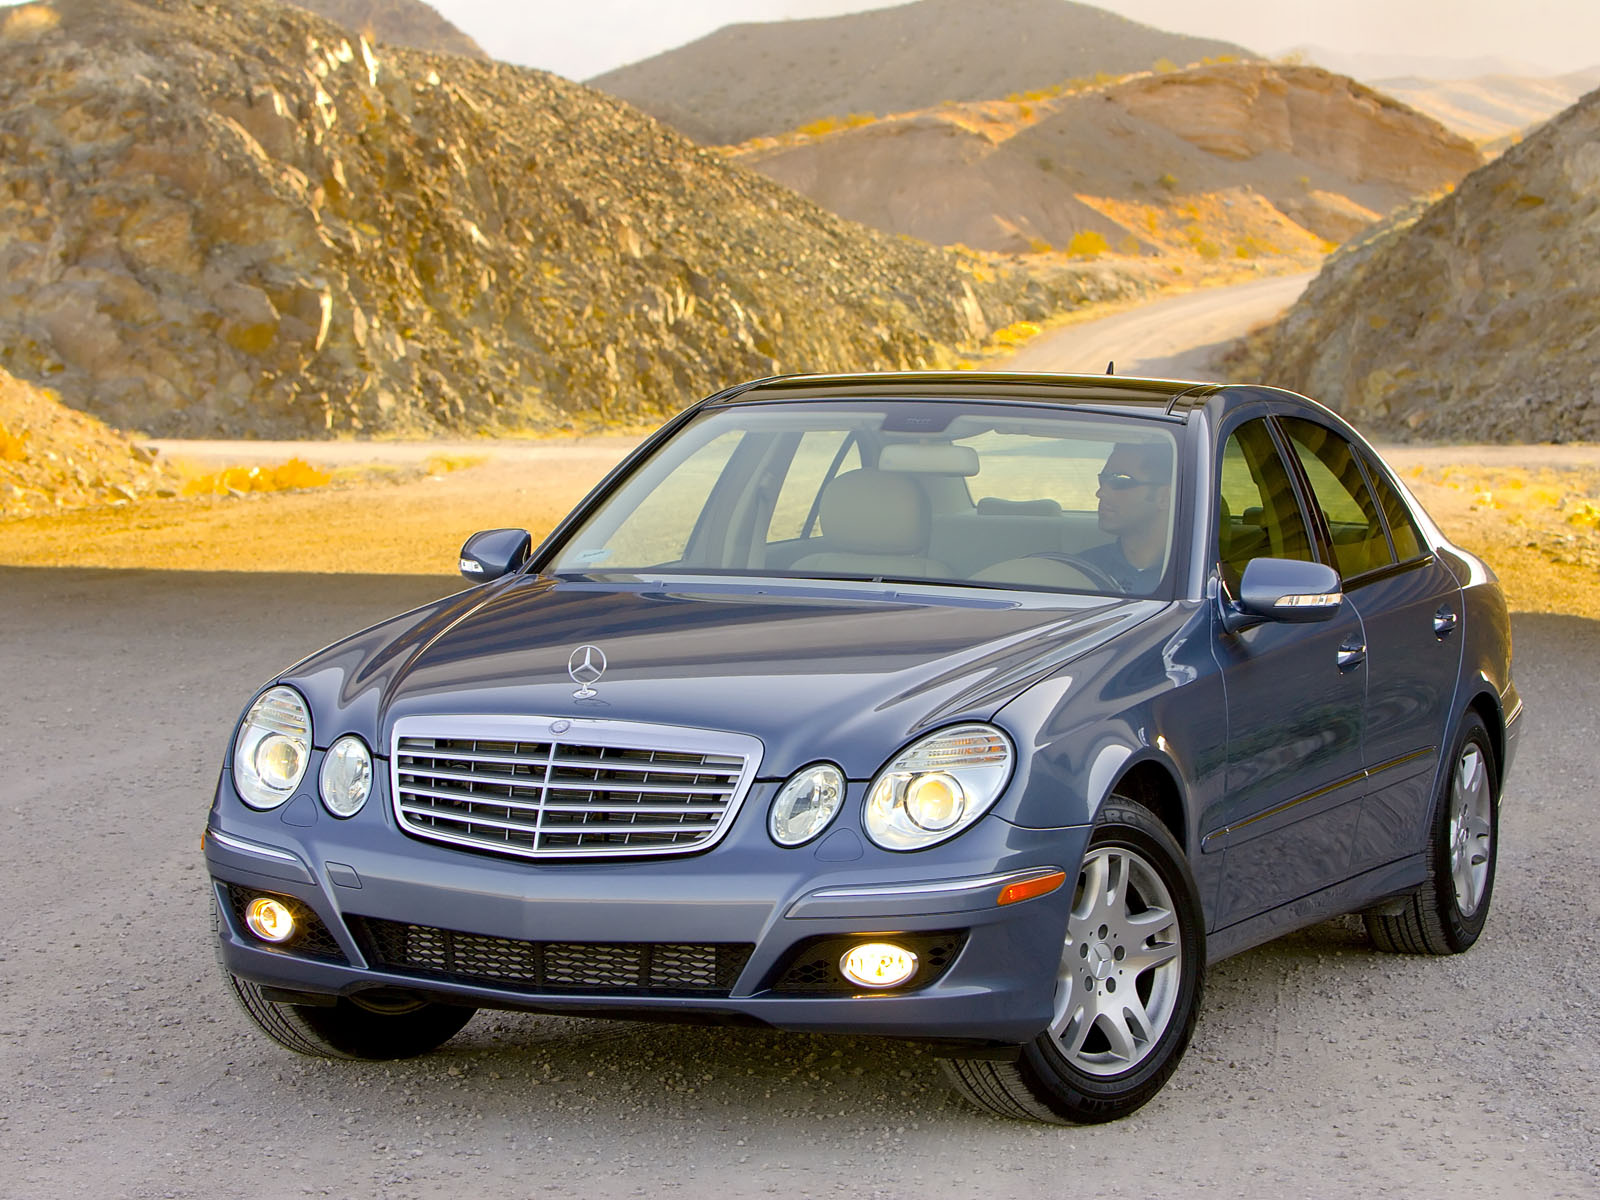 Mercedes benz e class 2006 review amazing pictures and for 2006 mercedes benz e350 reviews